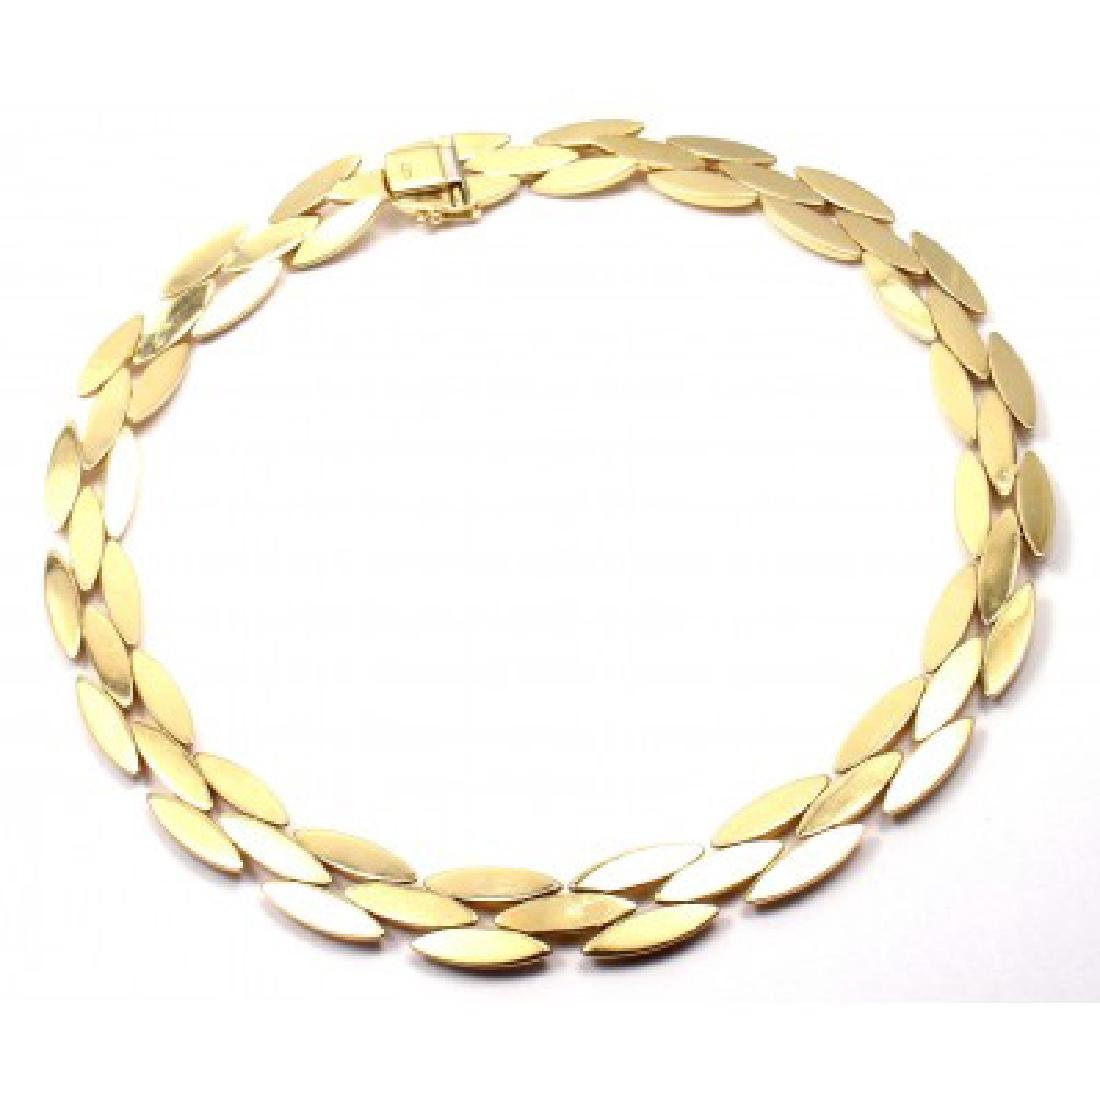 CARTIER GENTIANE 18K THREE ROW RICE LINK NECKLACE - 6